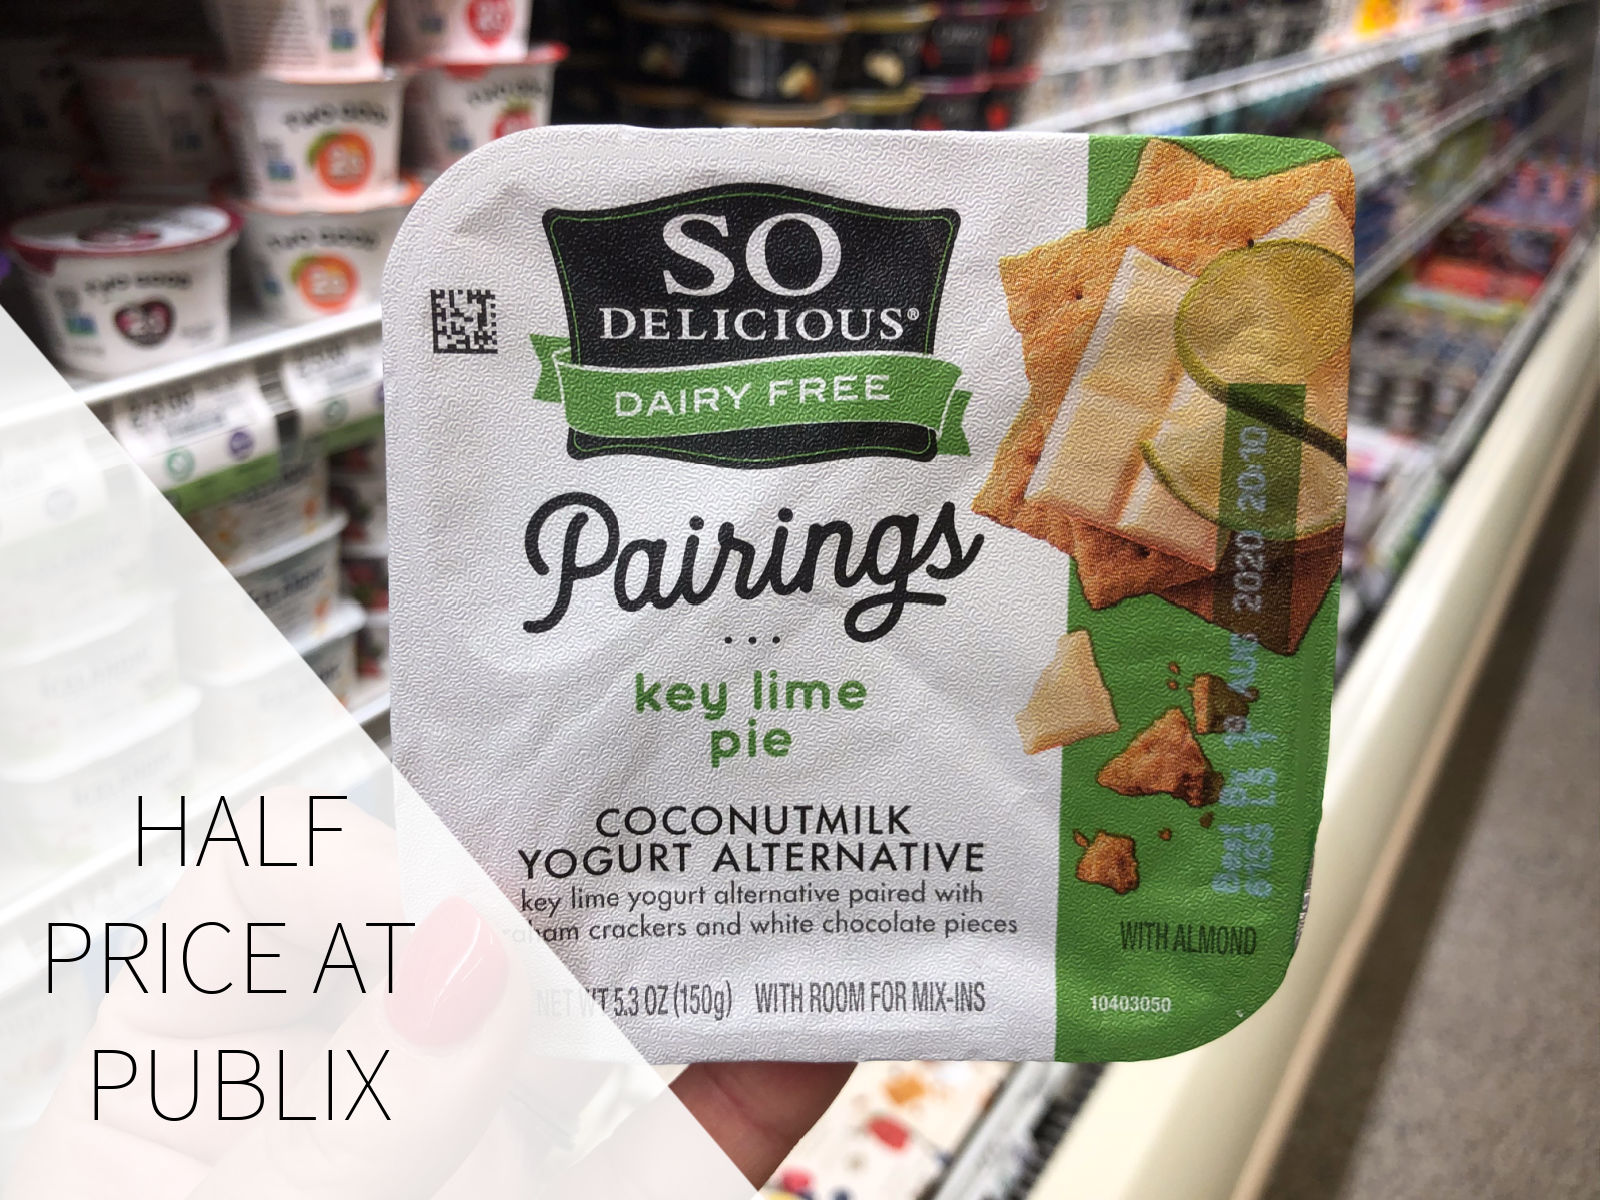 So Delicious Pairings As Low As 14¢ At Publix on I Heart Publix 2